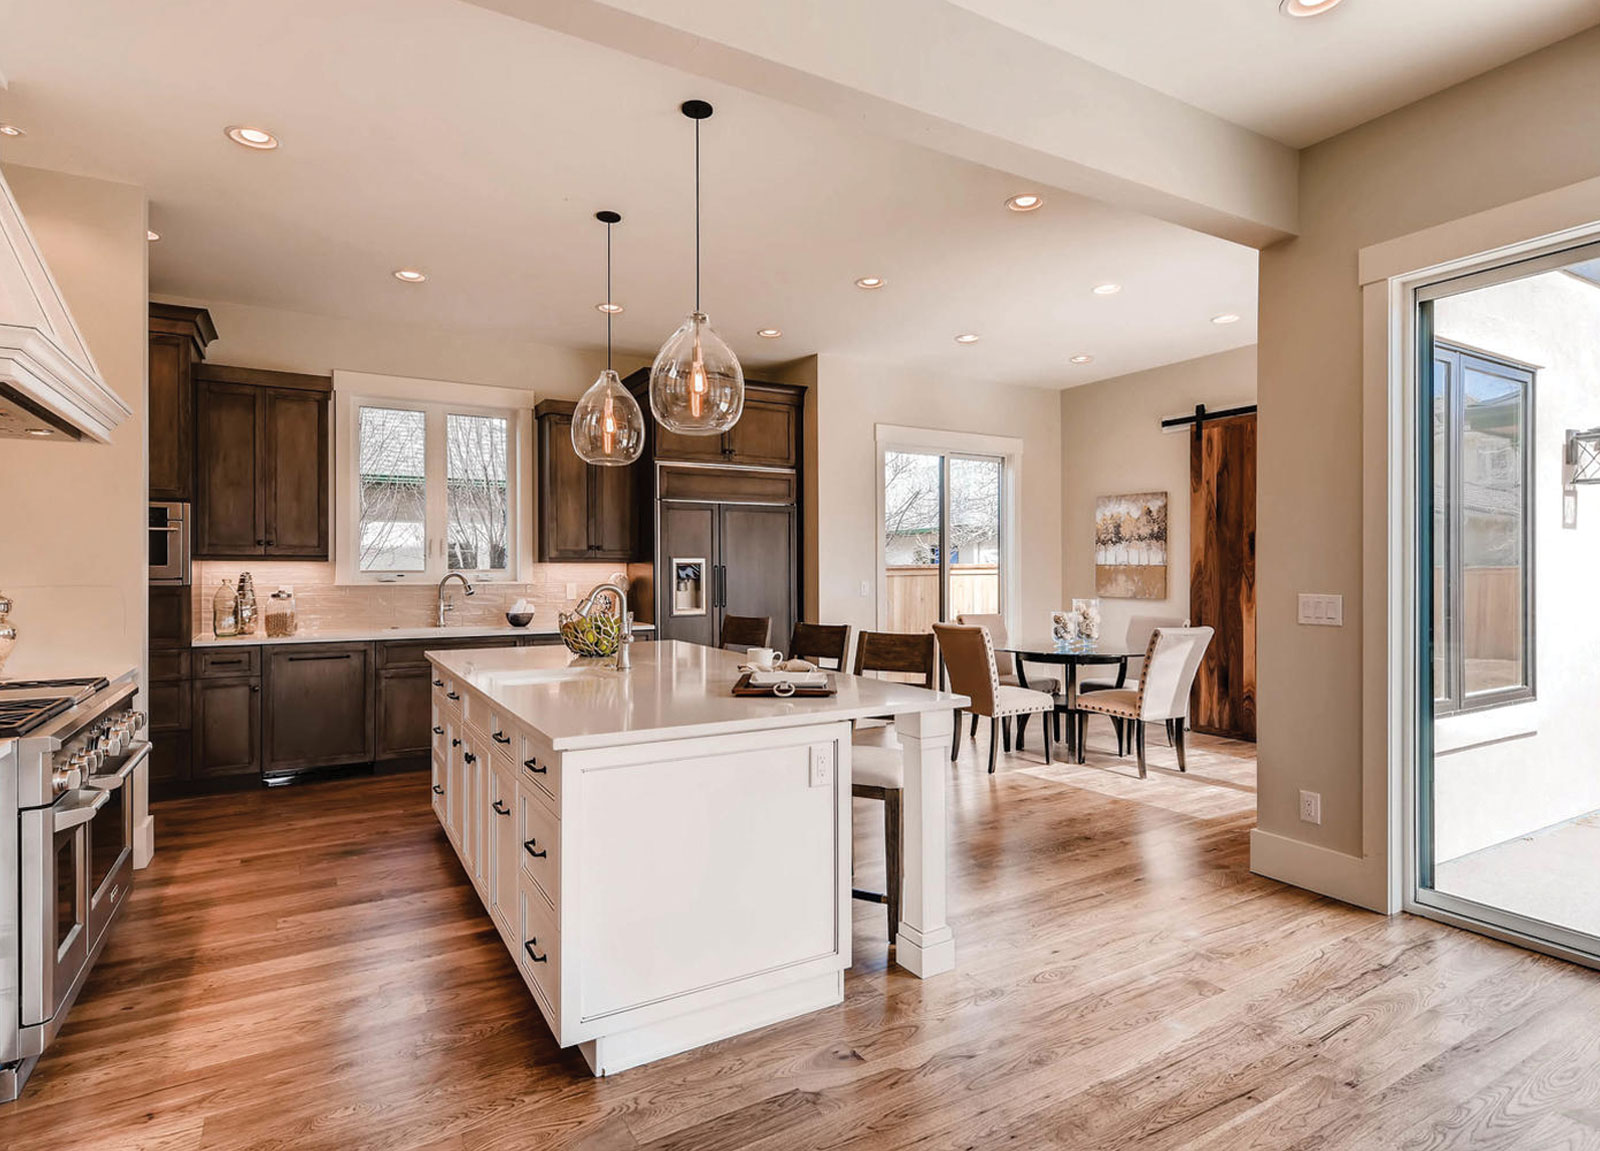 Kitchen trends offer many options for the centerpiece room of any home